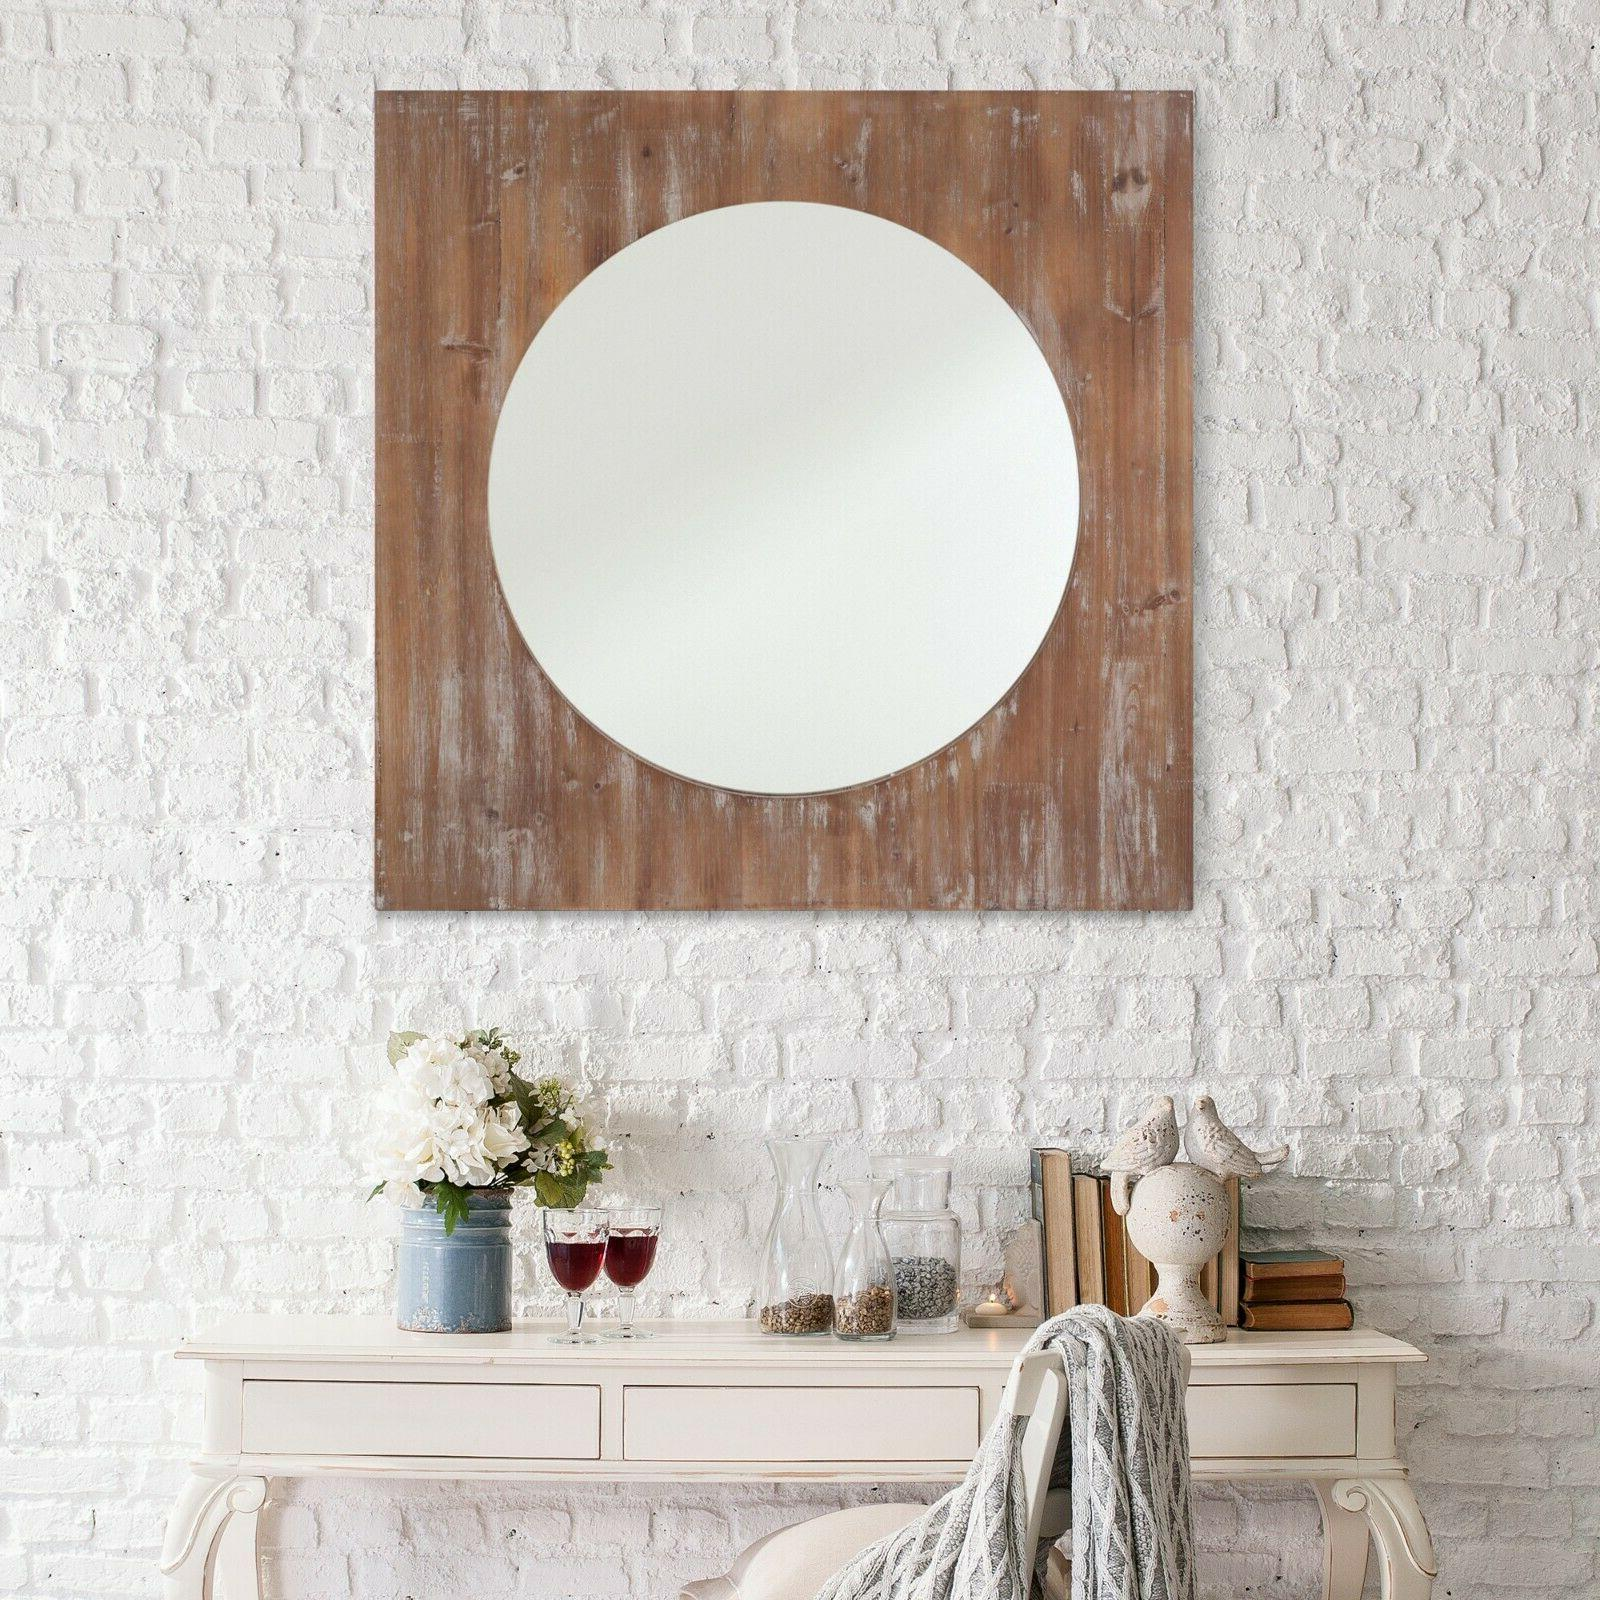 Wall Mount Wood Frame Mirror Oval Vintage Chick Makeup Decor